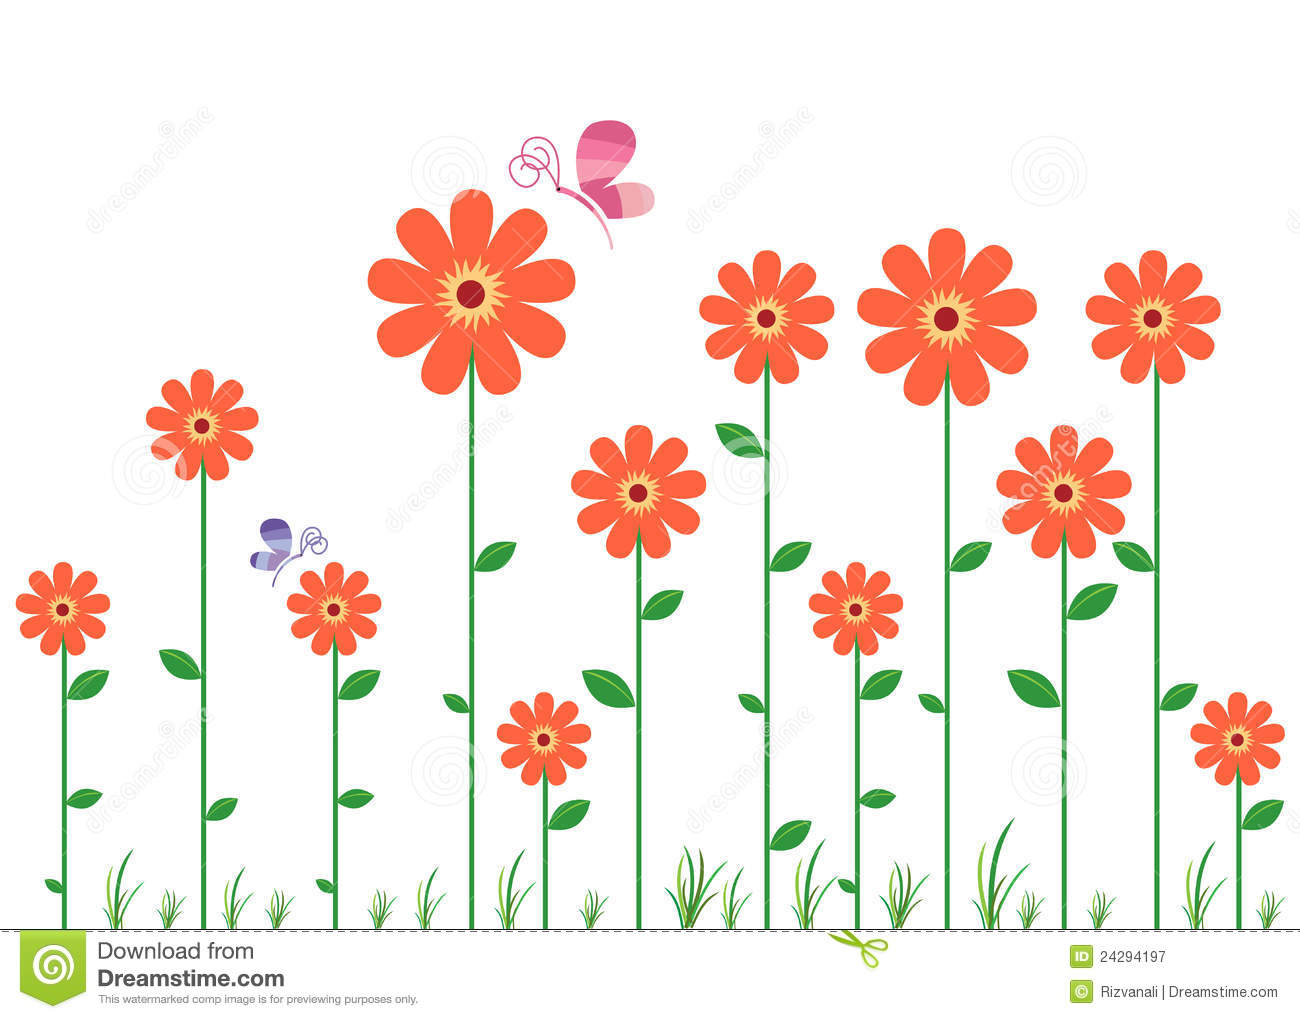 Flower Wall Decal Royalty Free Stock Photography - Image: 24294197 Flower Vine Clipart